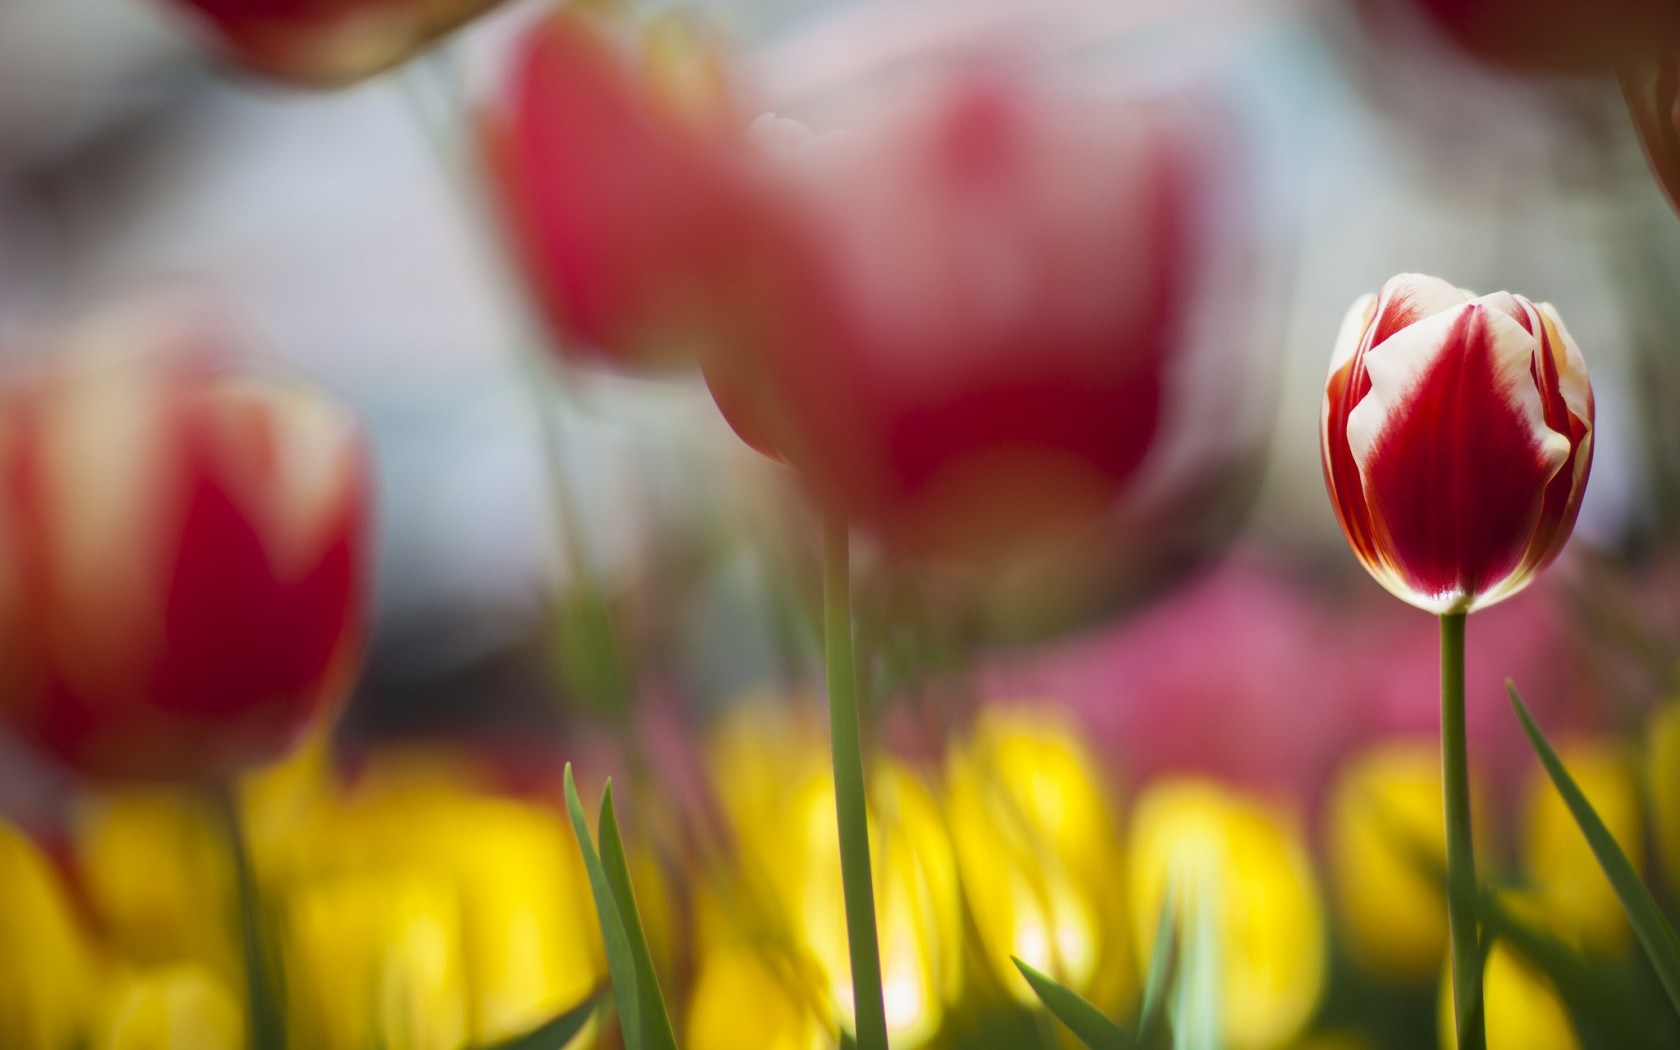 Flowers Tulips Red and White Focus